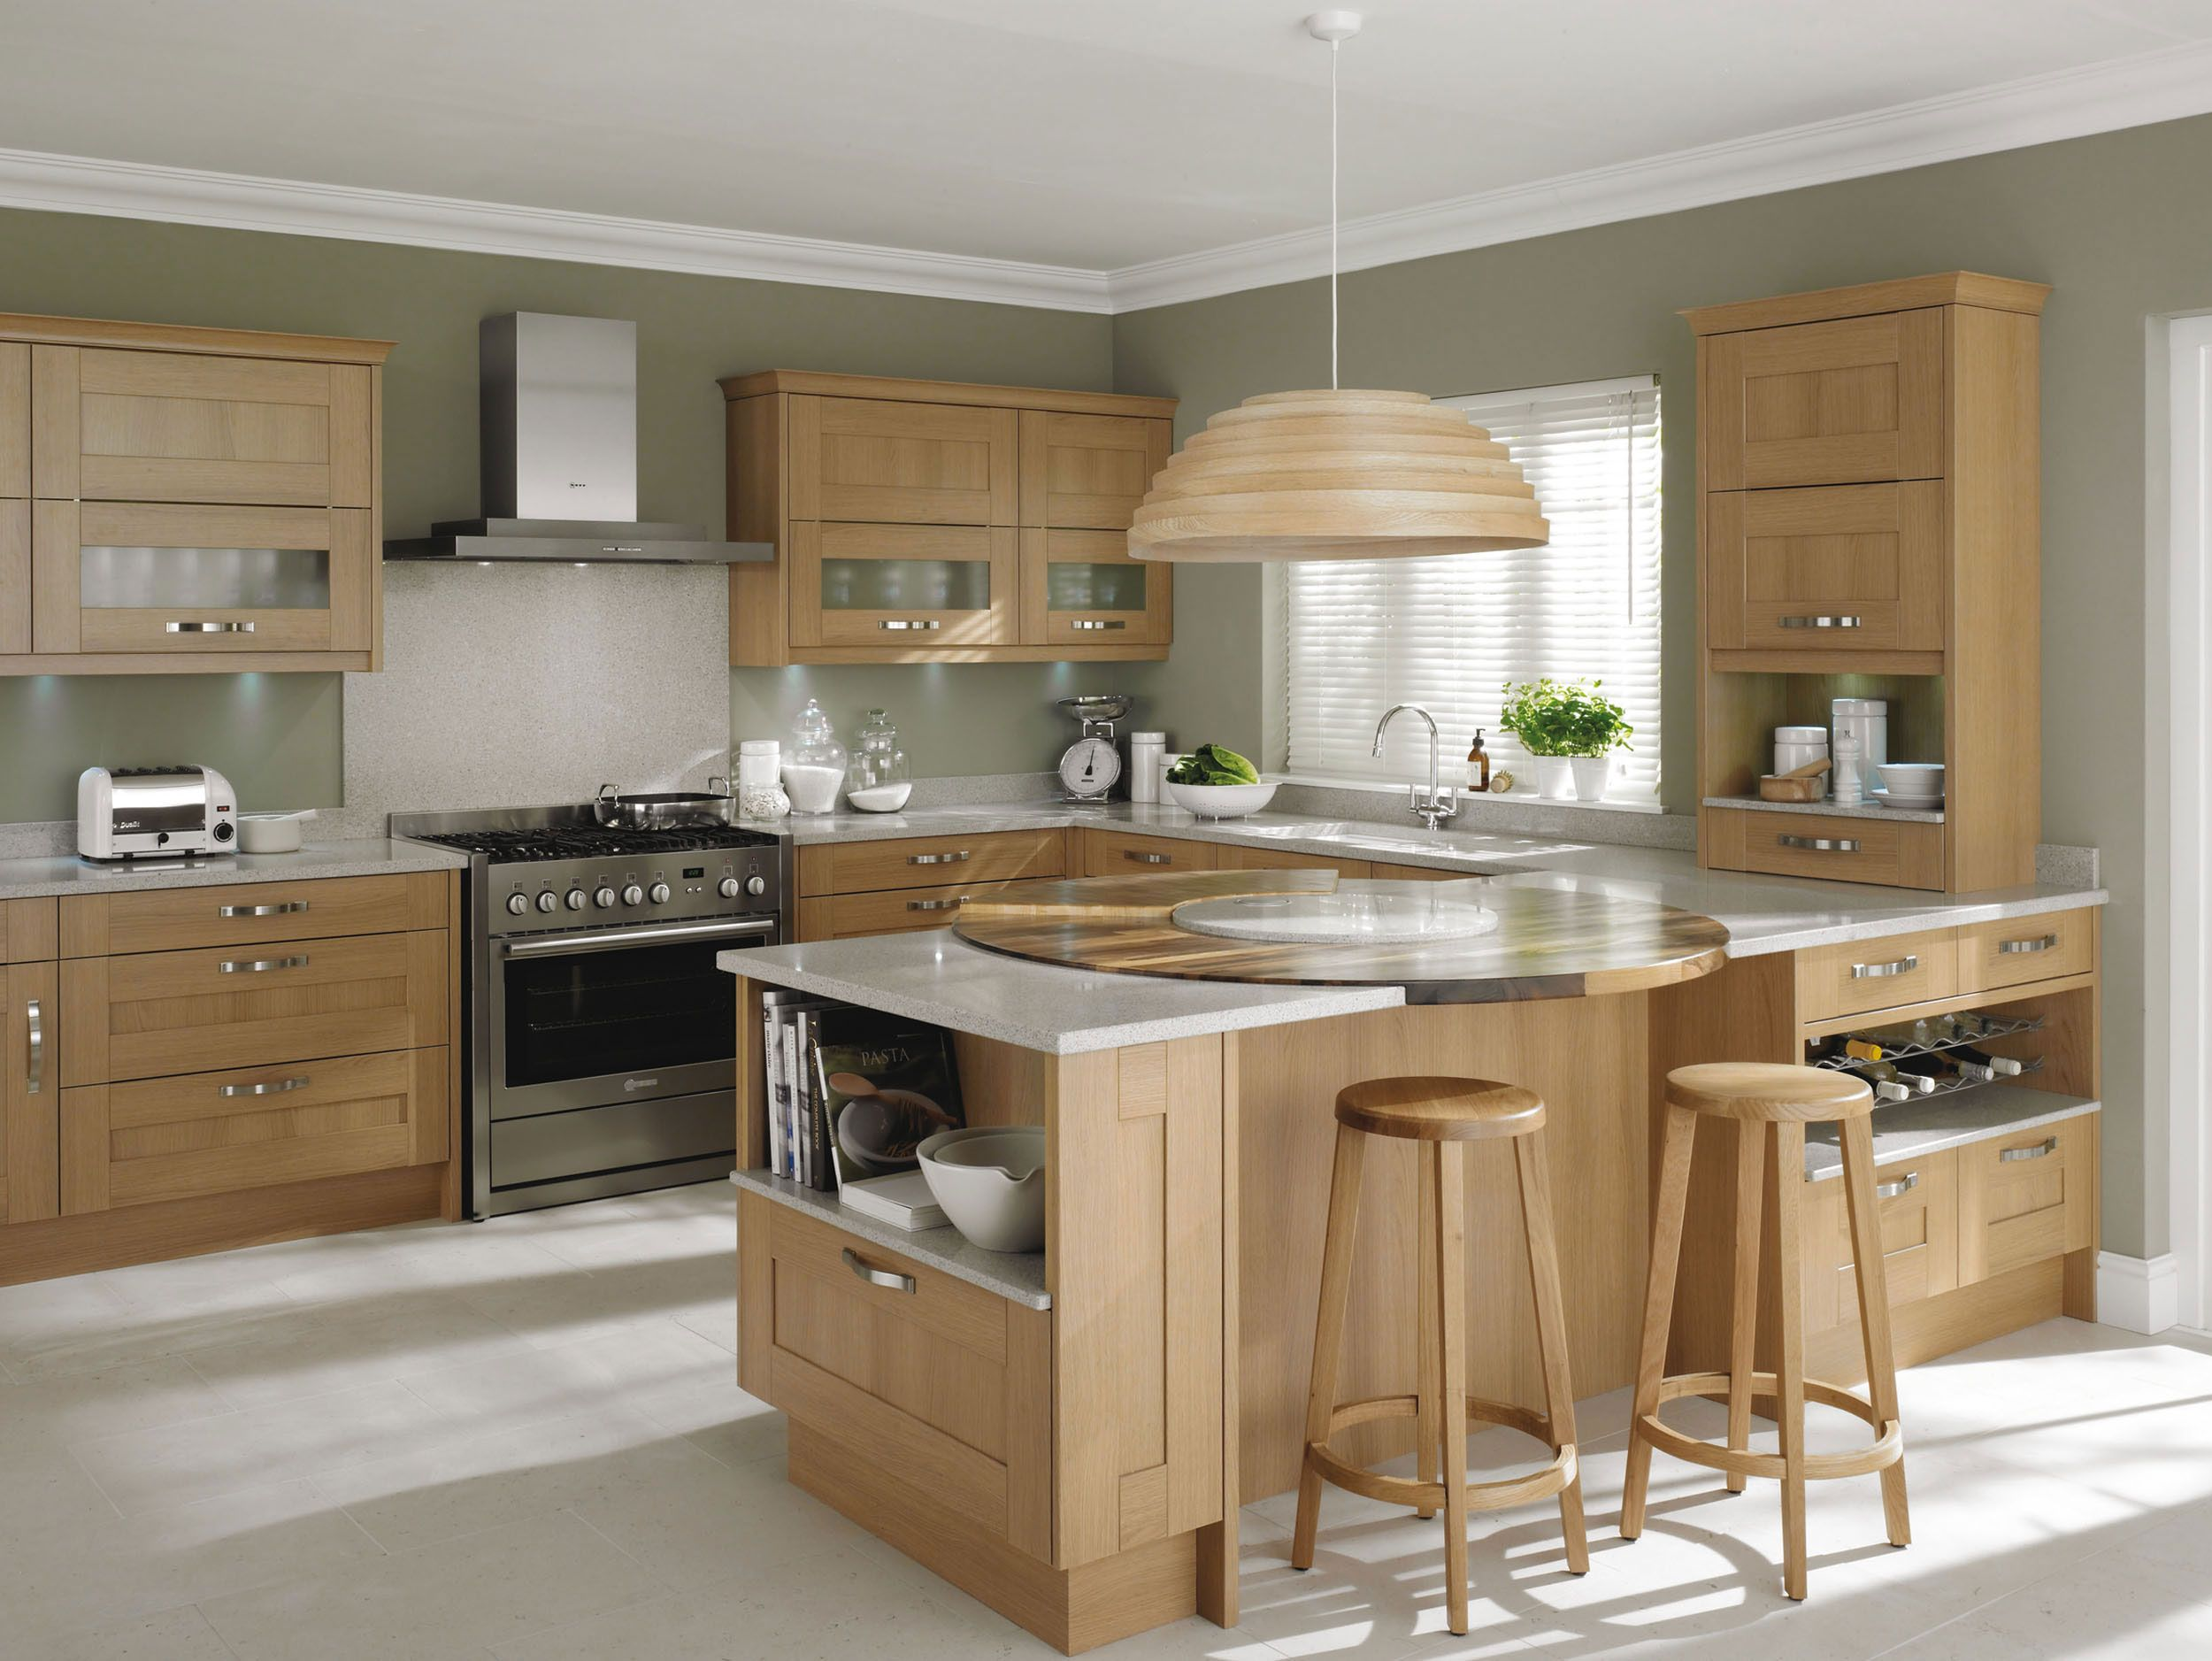 Oak kitchen ideas google search home kitchens for Kitchen wood design